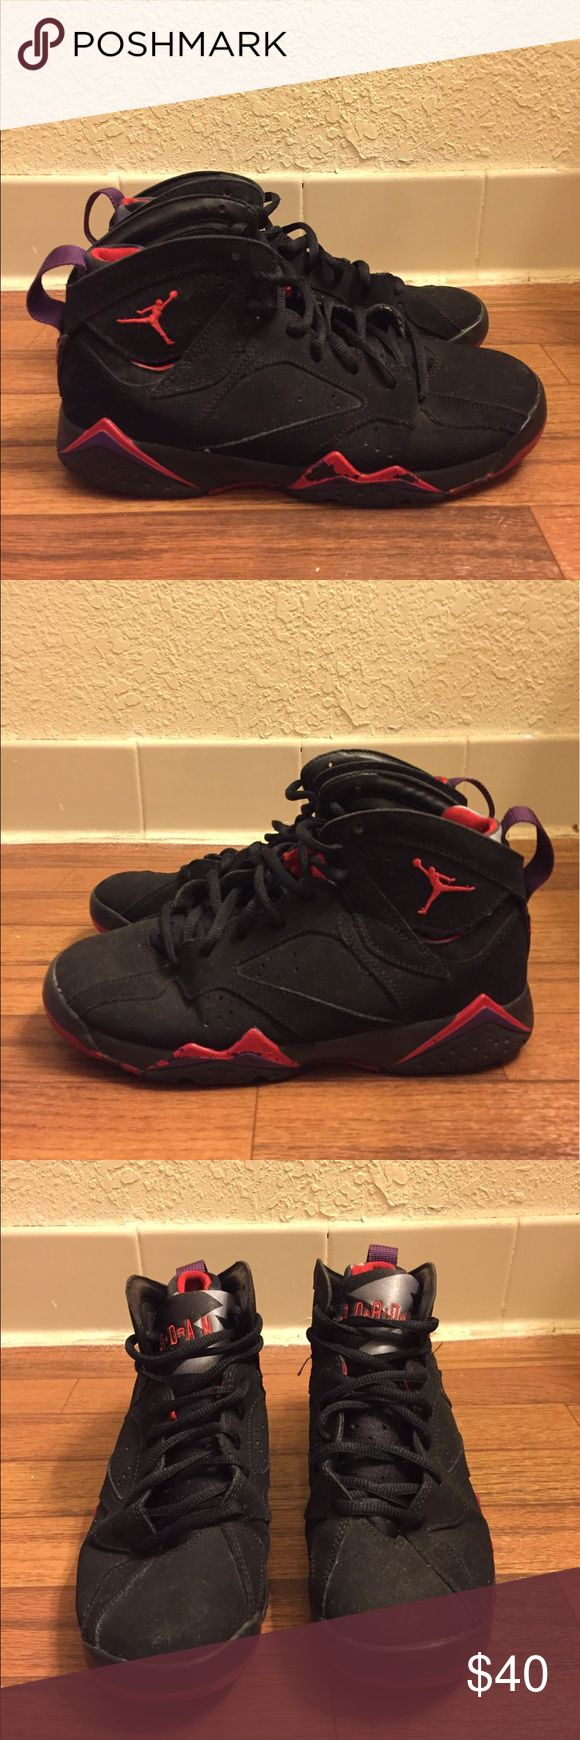 Nike Air Jordan 7 VII Retro GS Raptor 304774-018 Item Details: • Used: Left shoe toe cap & outsole is slightly separated. There are minor paint scraping on the shoes (Please view photos). Otherwise, it's in good condition. • Size: 6Y • Style #: 304774-018 • Color: Black/Tr Rd-Drk Chrcl-Clb Prpl  Shipping & Handling: • Item will ship same or next business day after completed payment is received. This excludes weekends.  Feel free to ask me any questions. Jordan Shoes Sneakers